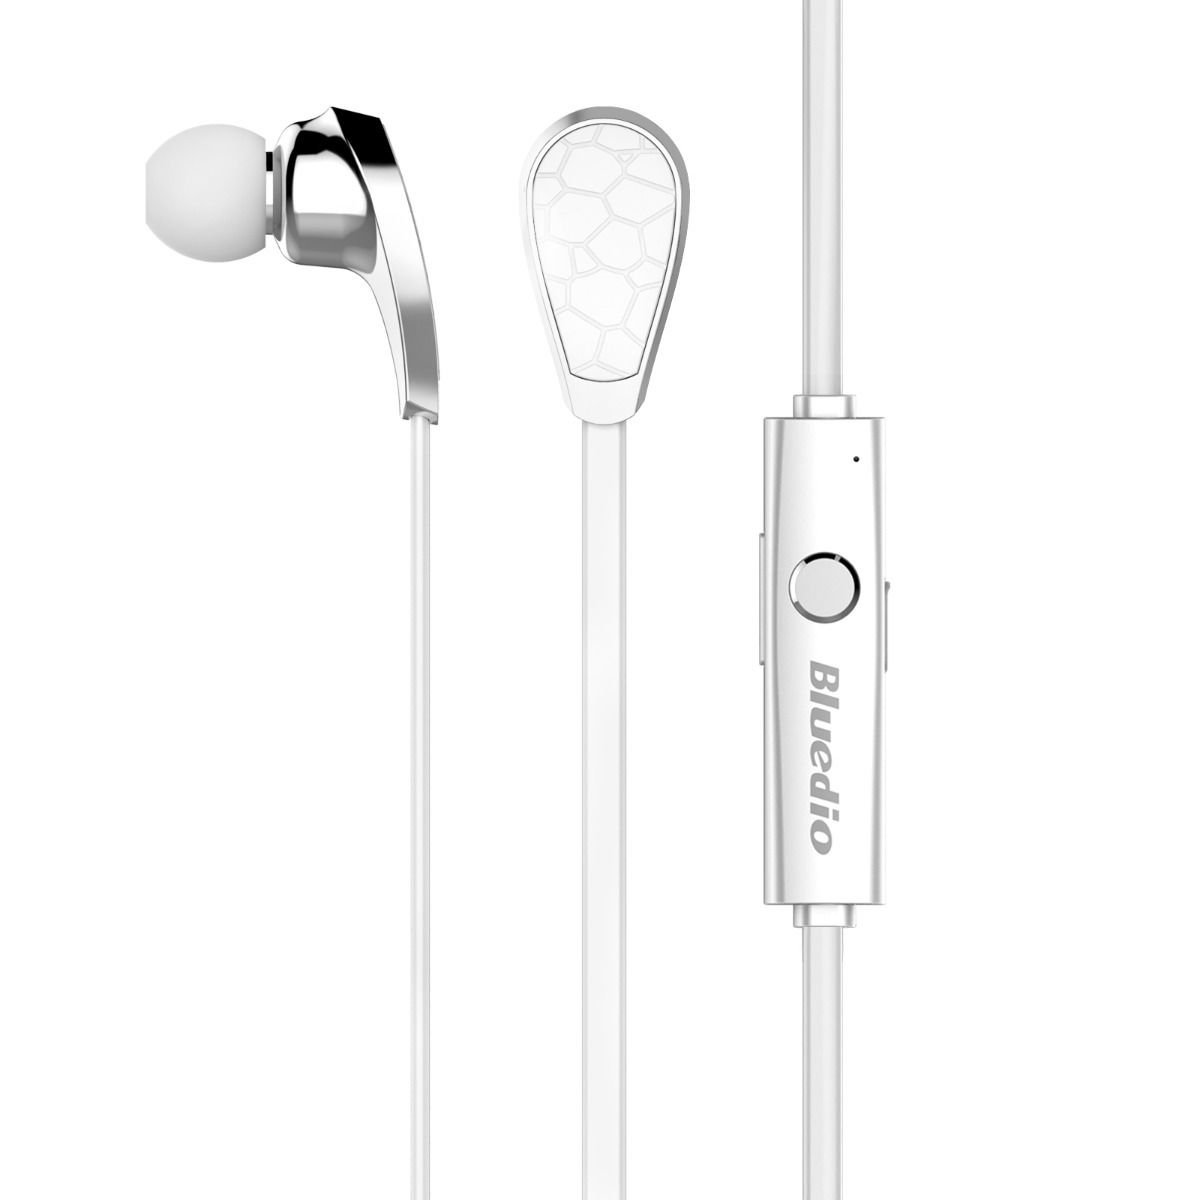 White Bluetooth 4.1 Wireless Stereo Earphone Handsfree Sport Headset for iPhone 5 5S 6 db